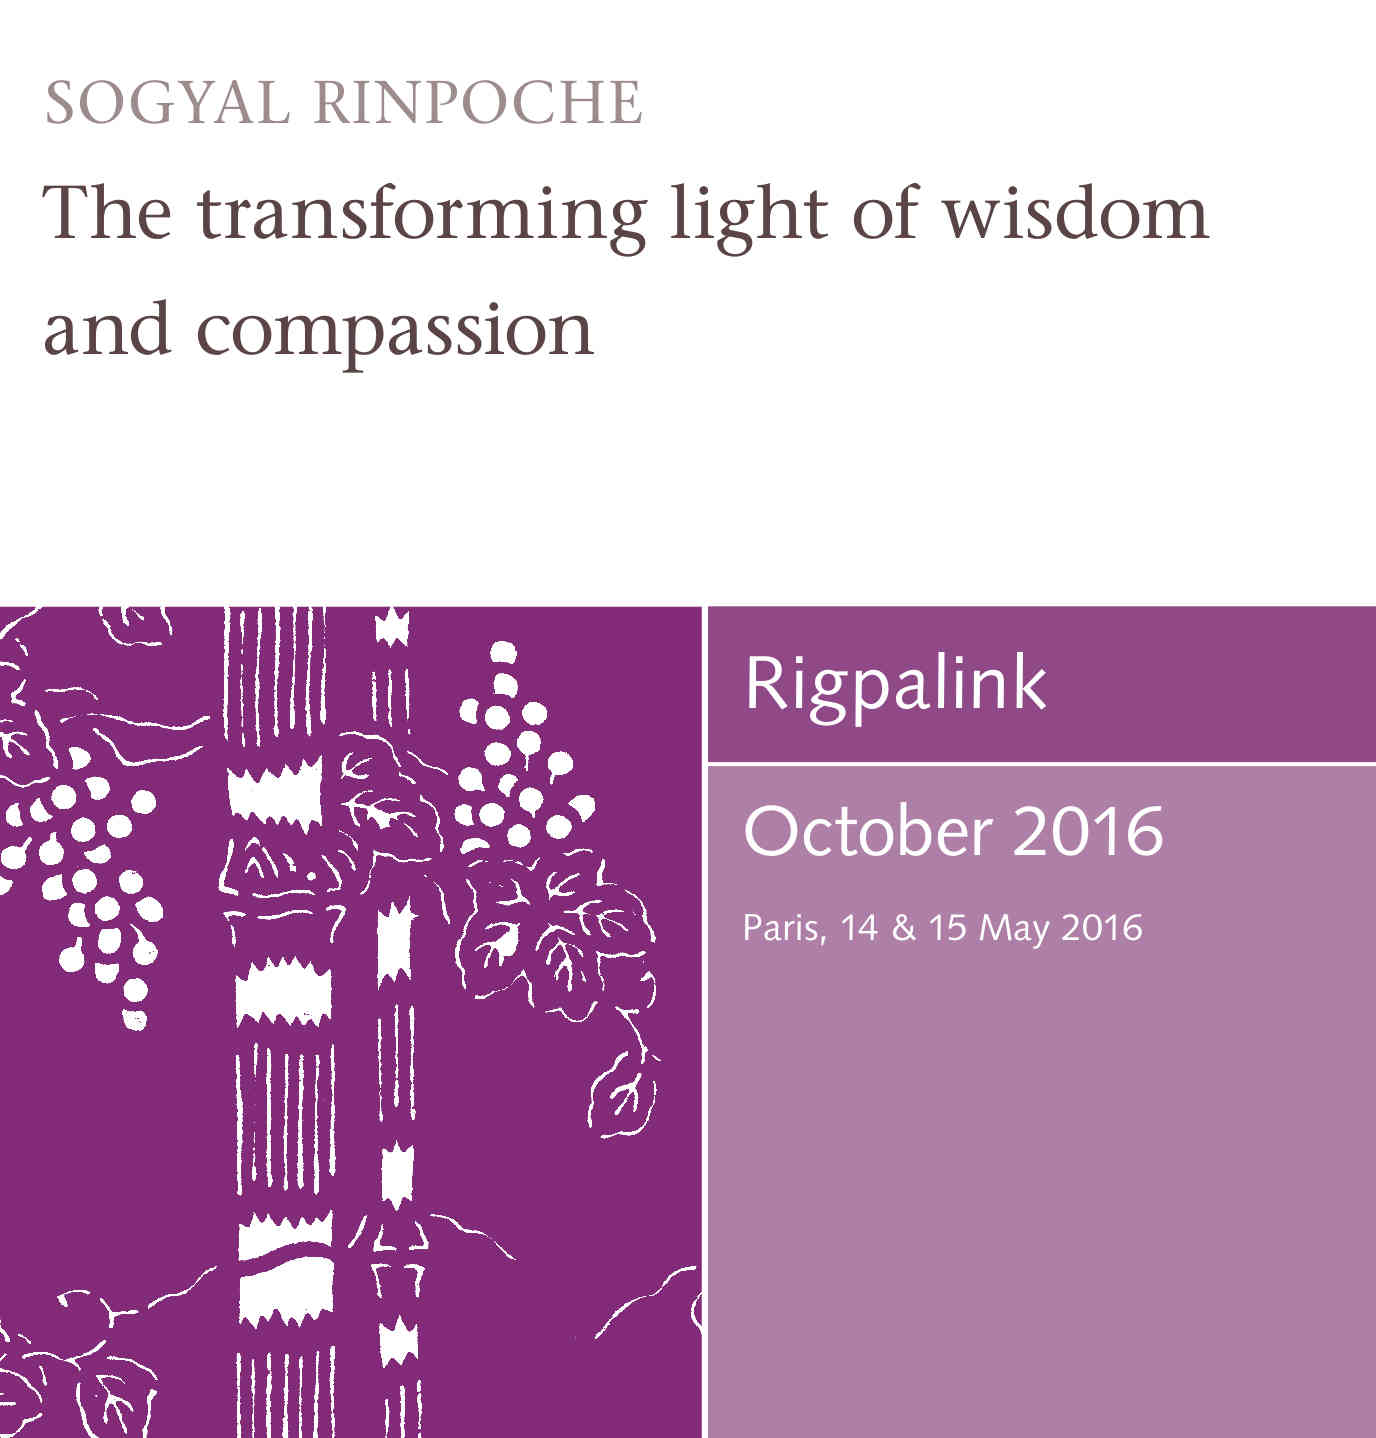 The transforming light of wisdom and compassion MP3 or DVD